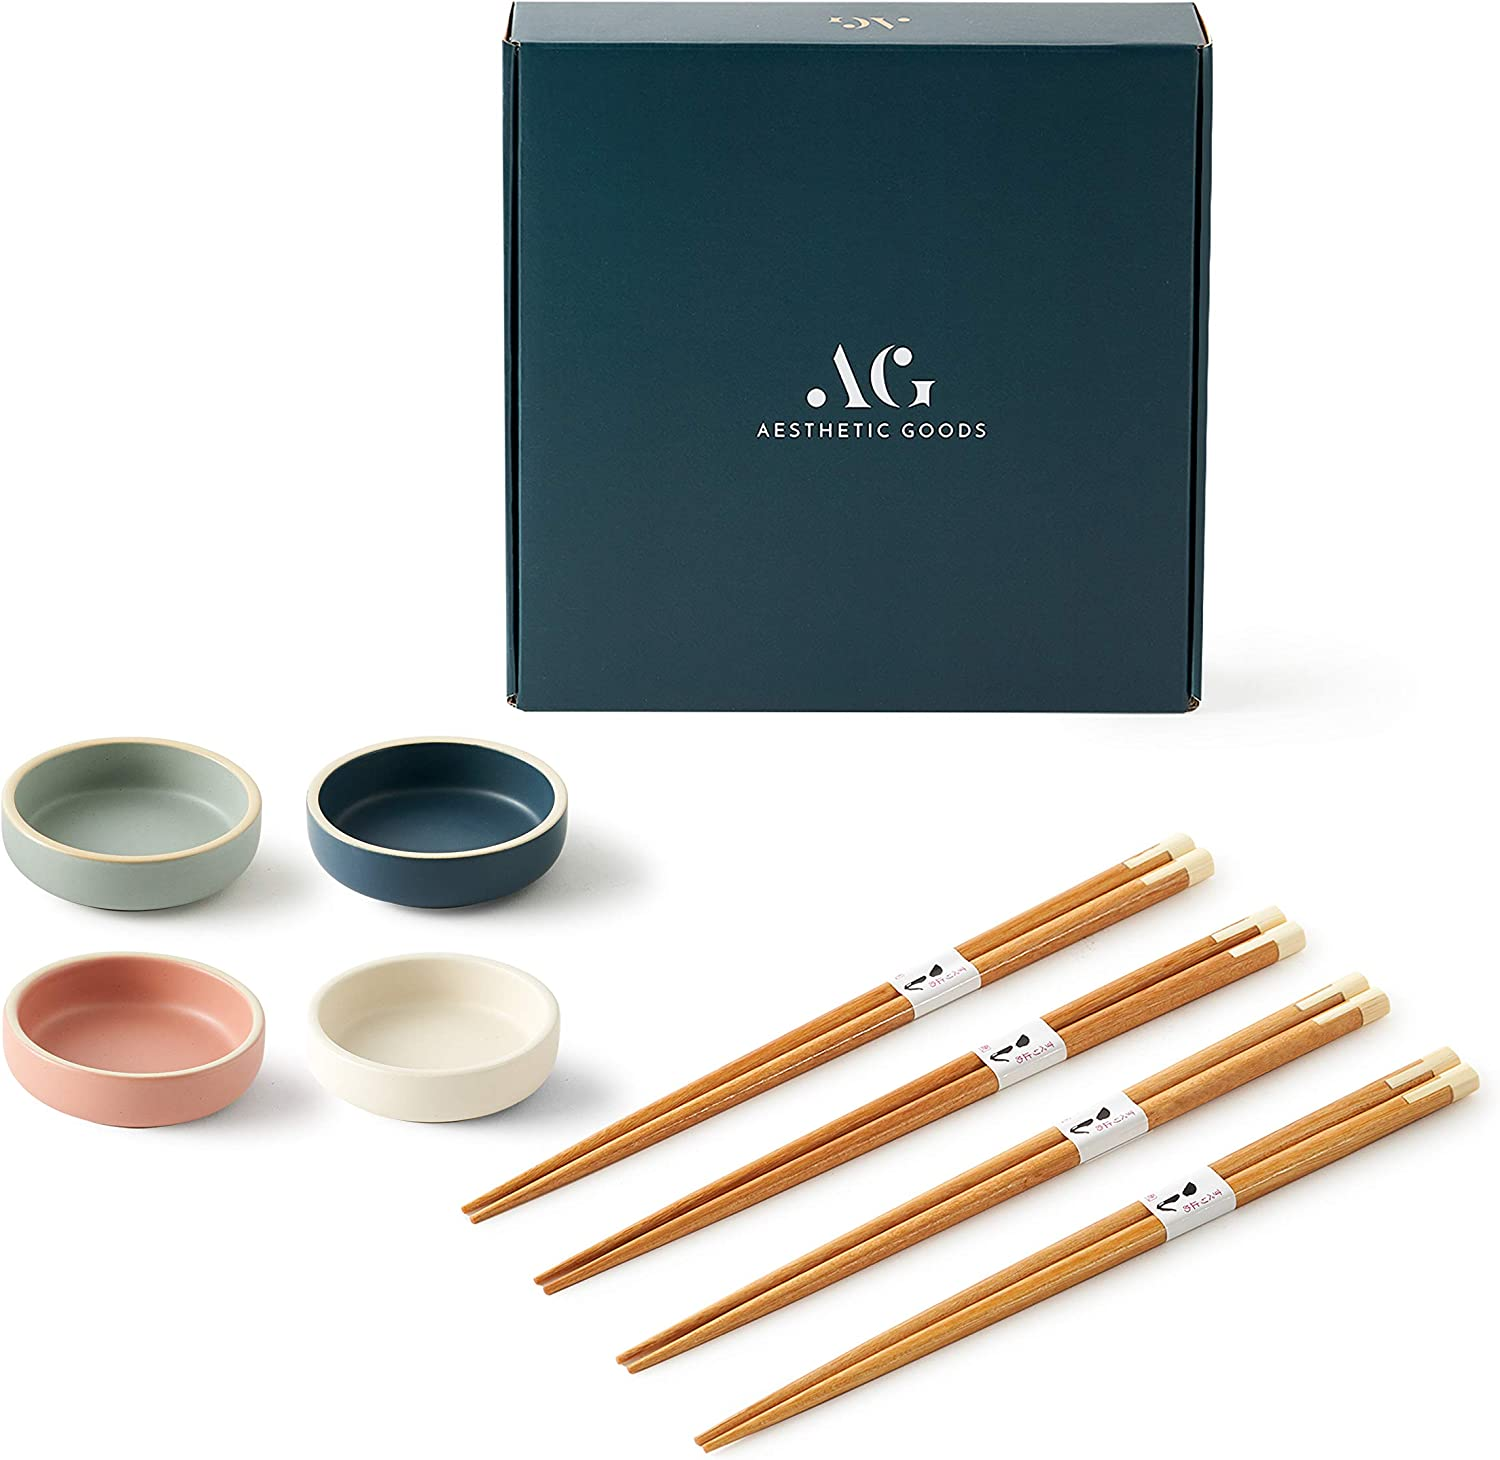 4 Small Ceramic Sauce Dipping Bowls with Chopsticks by Aesthetic Goods | Condiment Soy Sauce Dip | Food Prep Pinch Bowl | Charcuterie Board Accessories | Japanese Sushi Mini Plate Set | Mise En Place